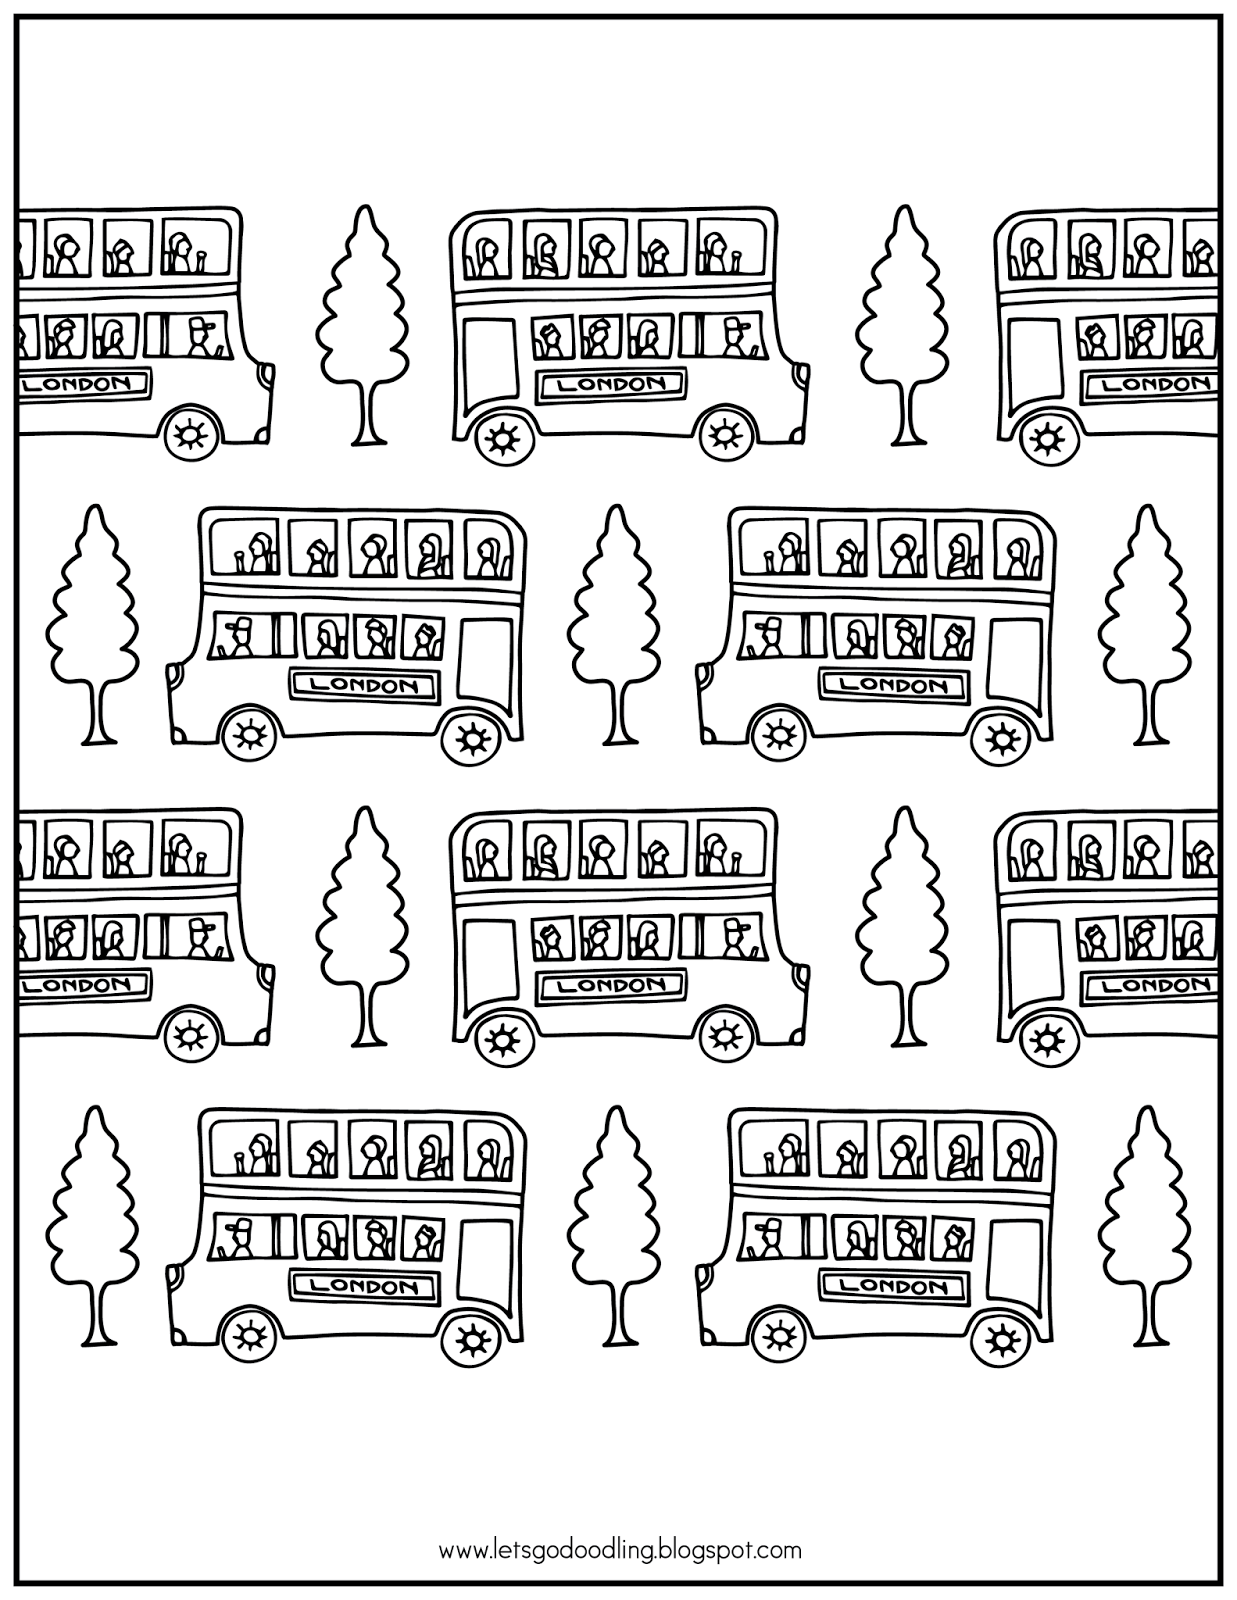 how to draw a london bus step by step